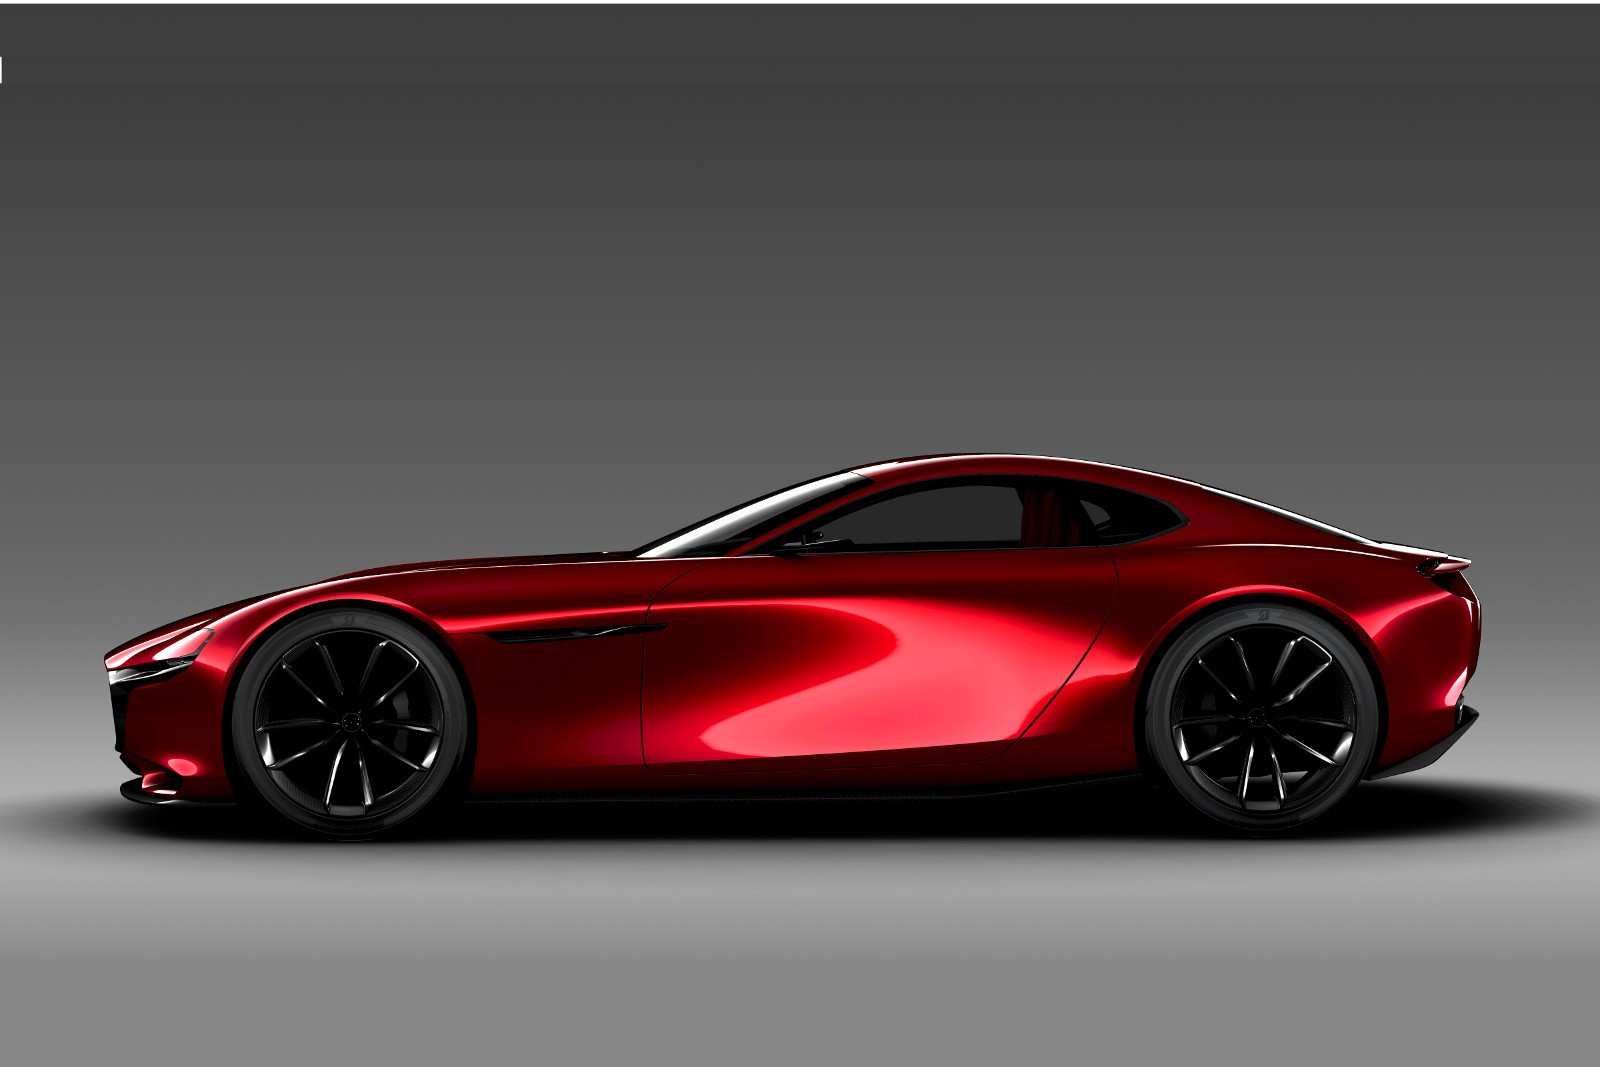 New Mazda Rotary Sports Car Concept Coming To 2017 Tokyo Motor Show